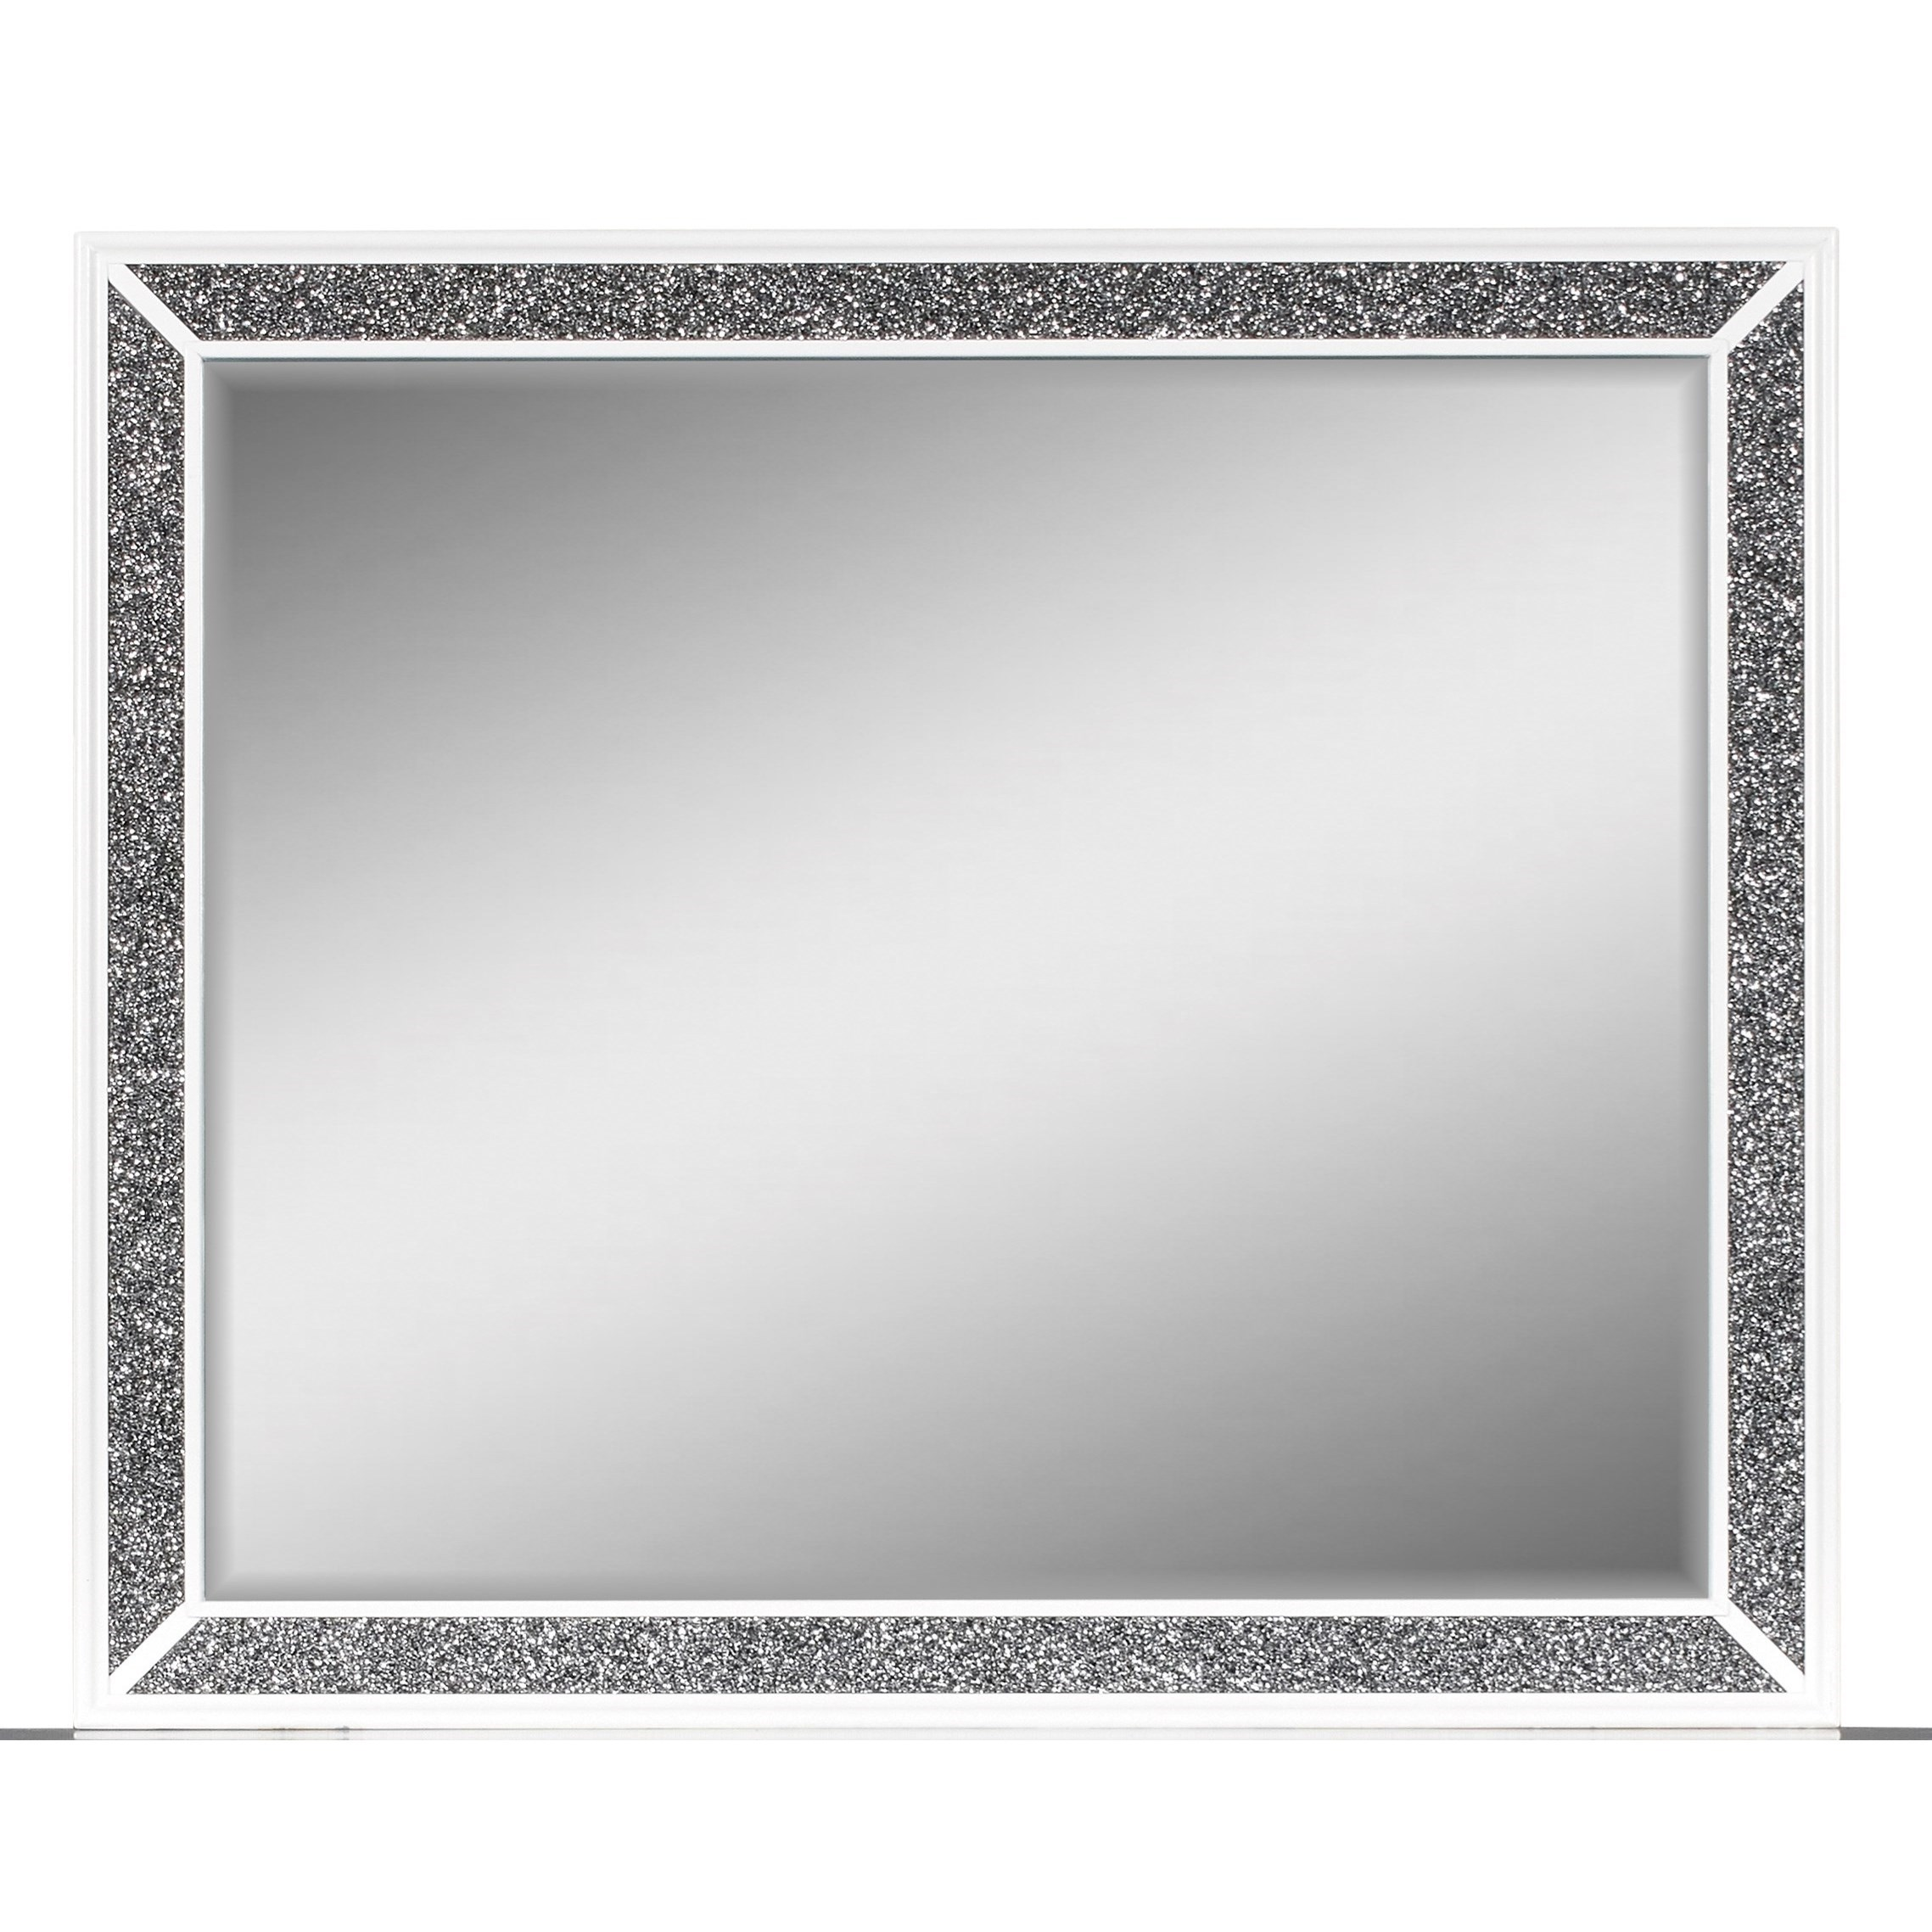 Park Imperial Mirror by New Classic at Dream Home Interiors